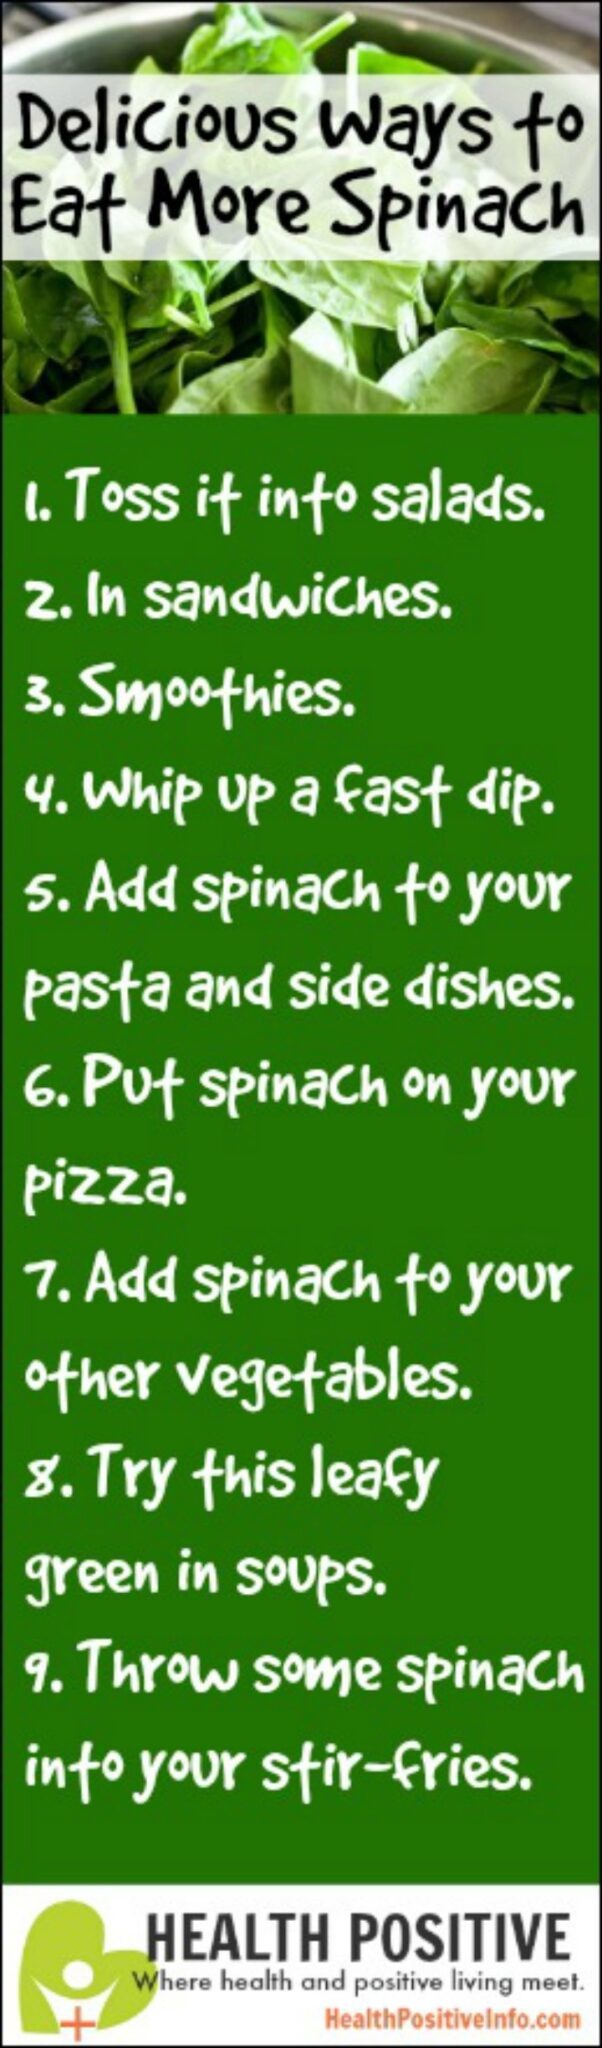 Delicious Ways to Eat More Spinach - https://healthpositiveinfo.com/delicious-ways-to-eat-more-spinach.html